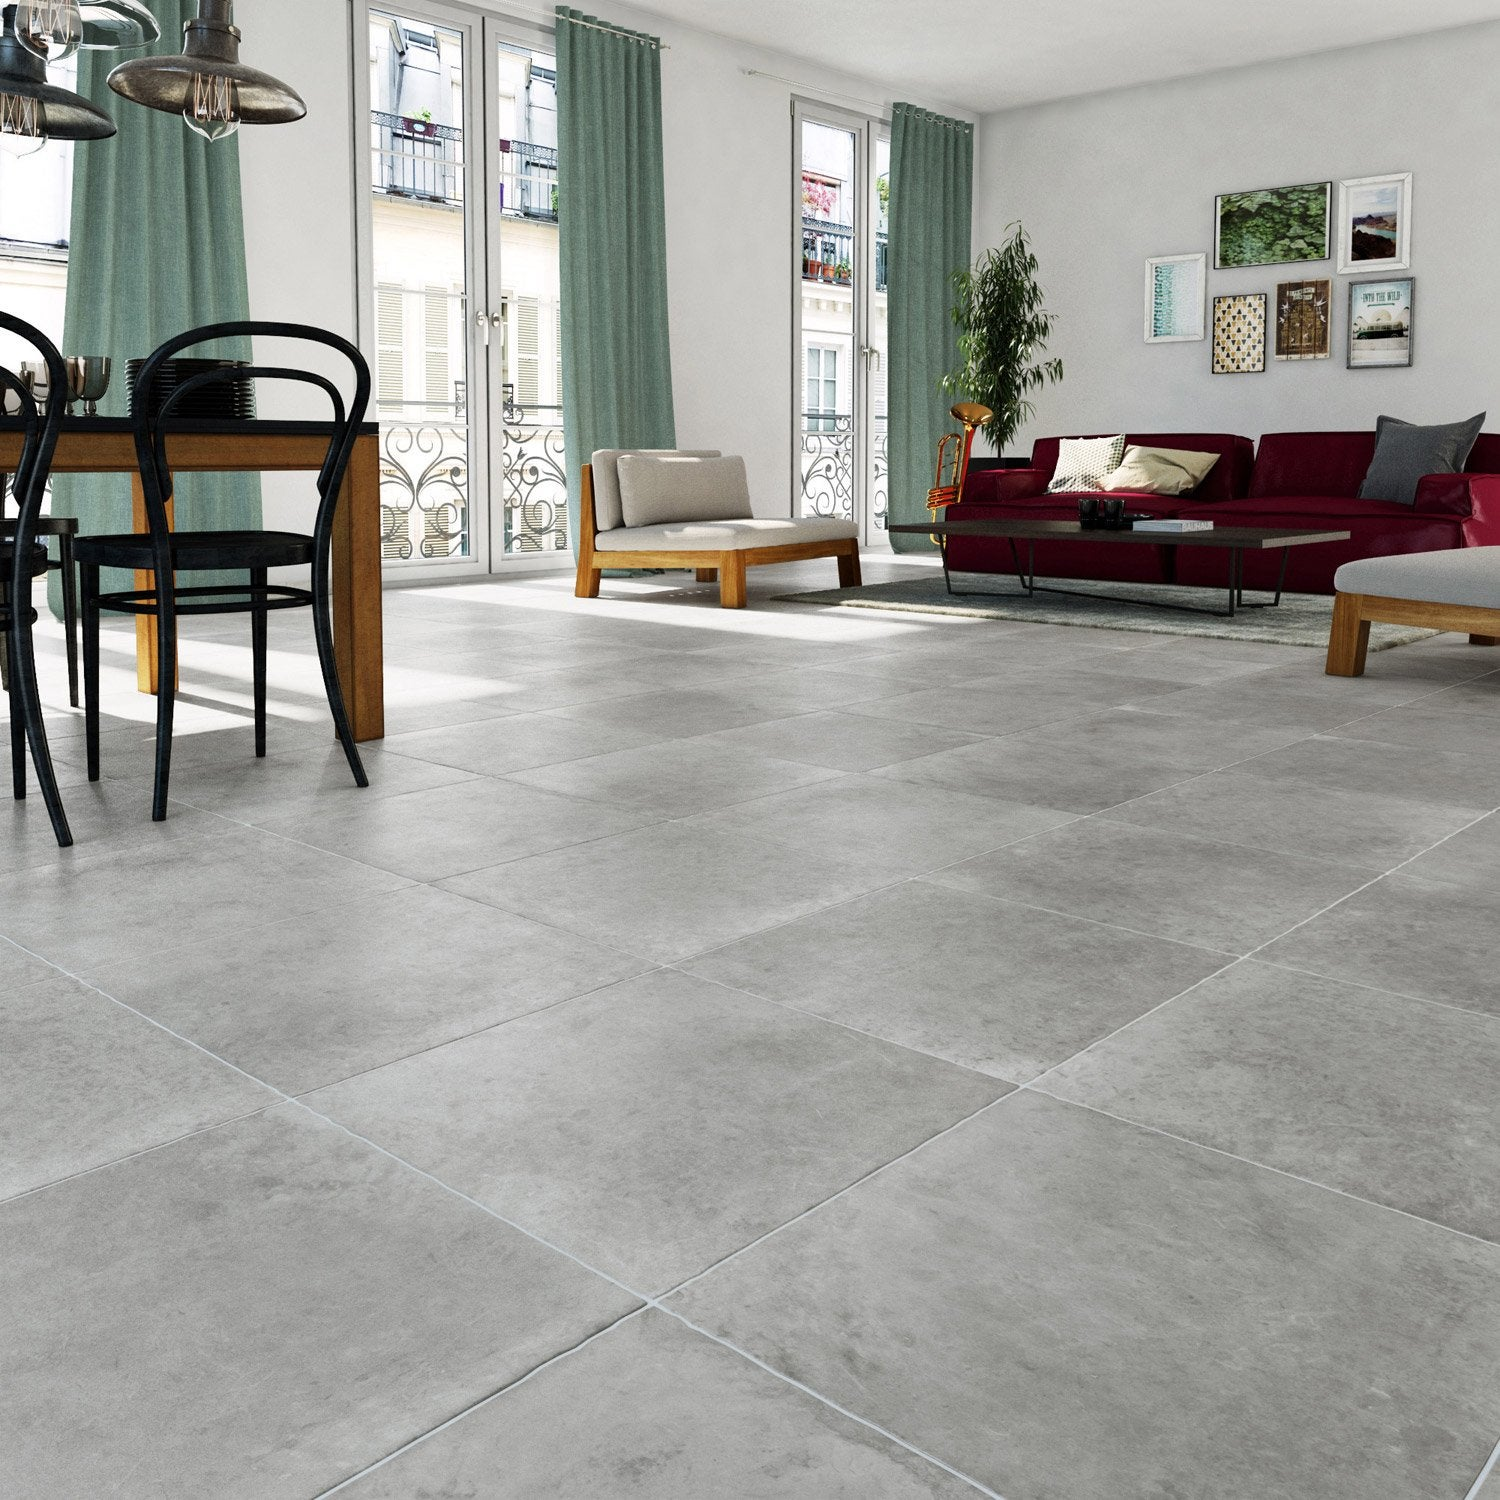 Carrelage sol et mur gris effet pierre monast re x l for Carrelage 70x70 gris